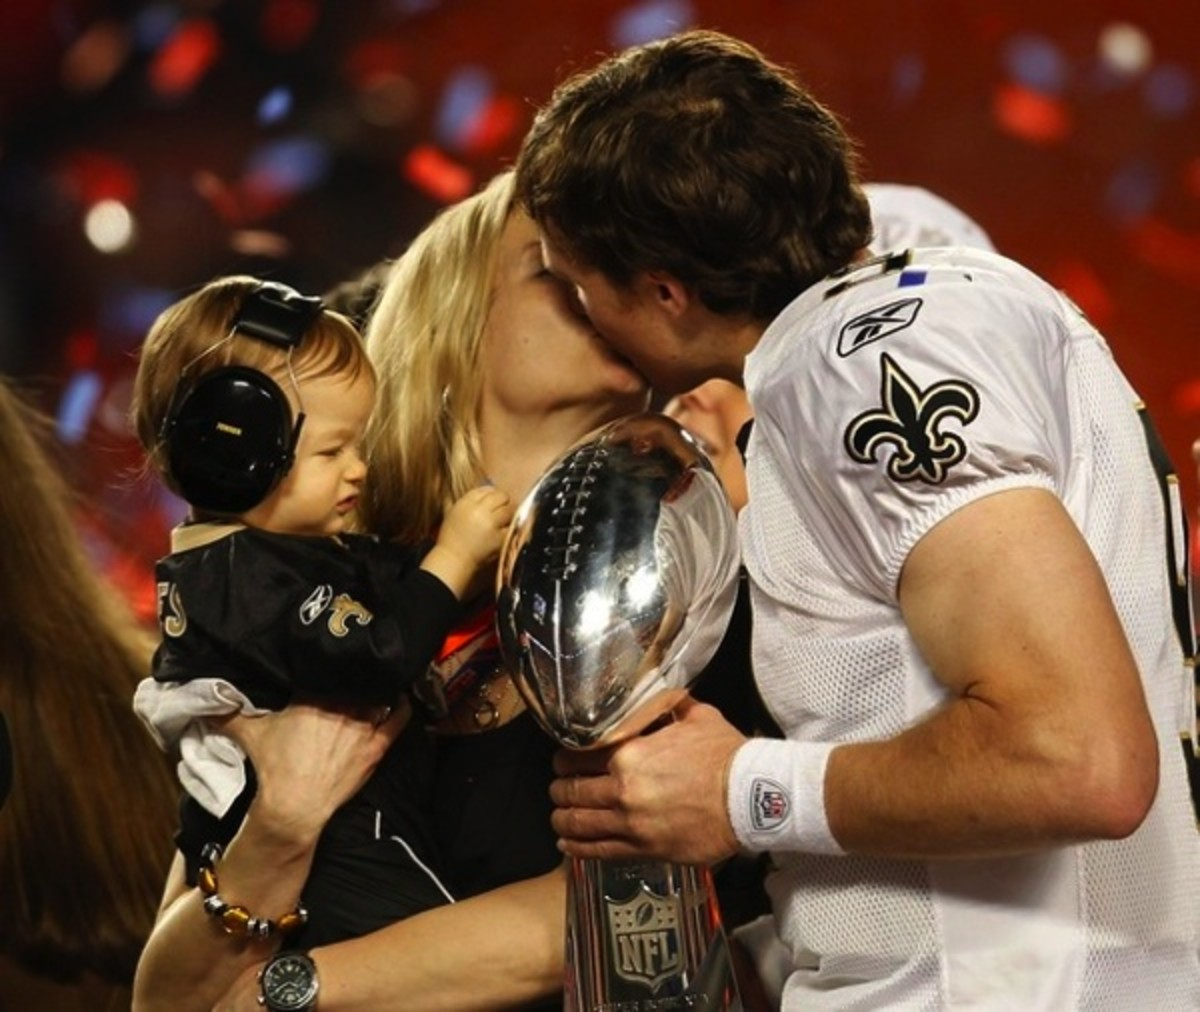 Drew Brees with wife Brittany and son Baylen at the Super Bowl XLXV win